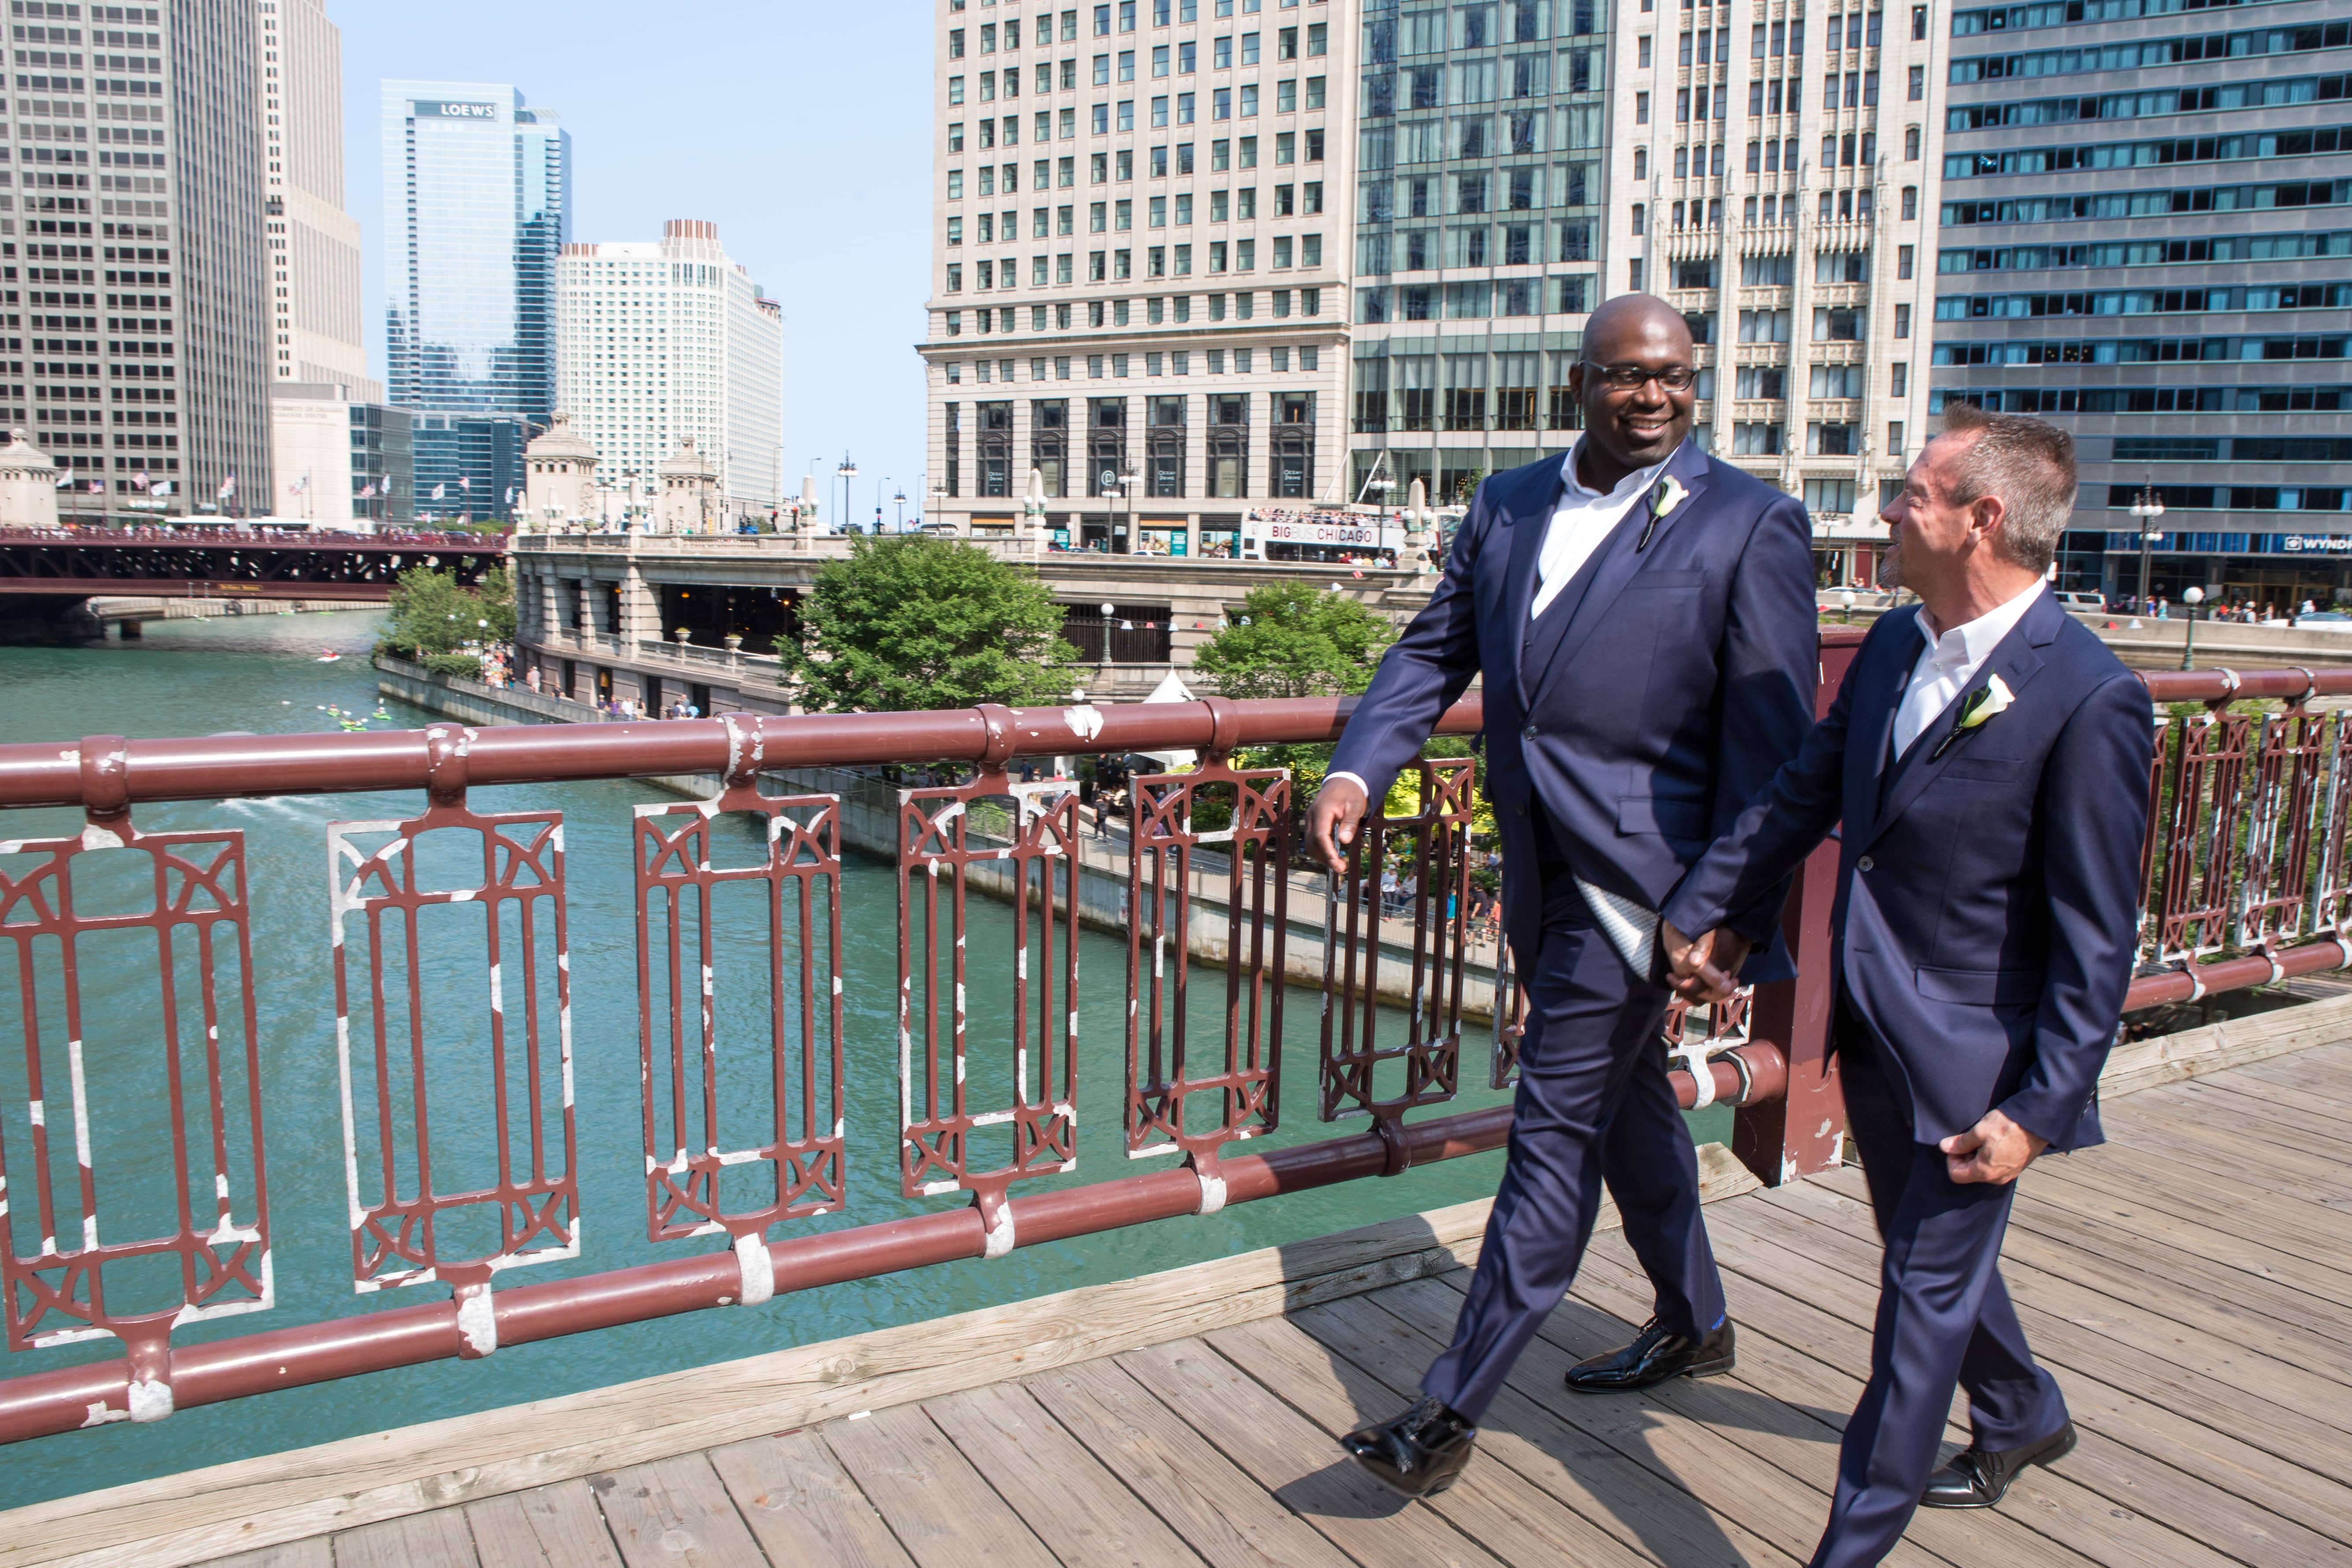 LGBT Wedding Couple crossing the Chicago River bridge